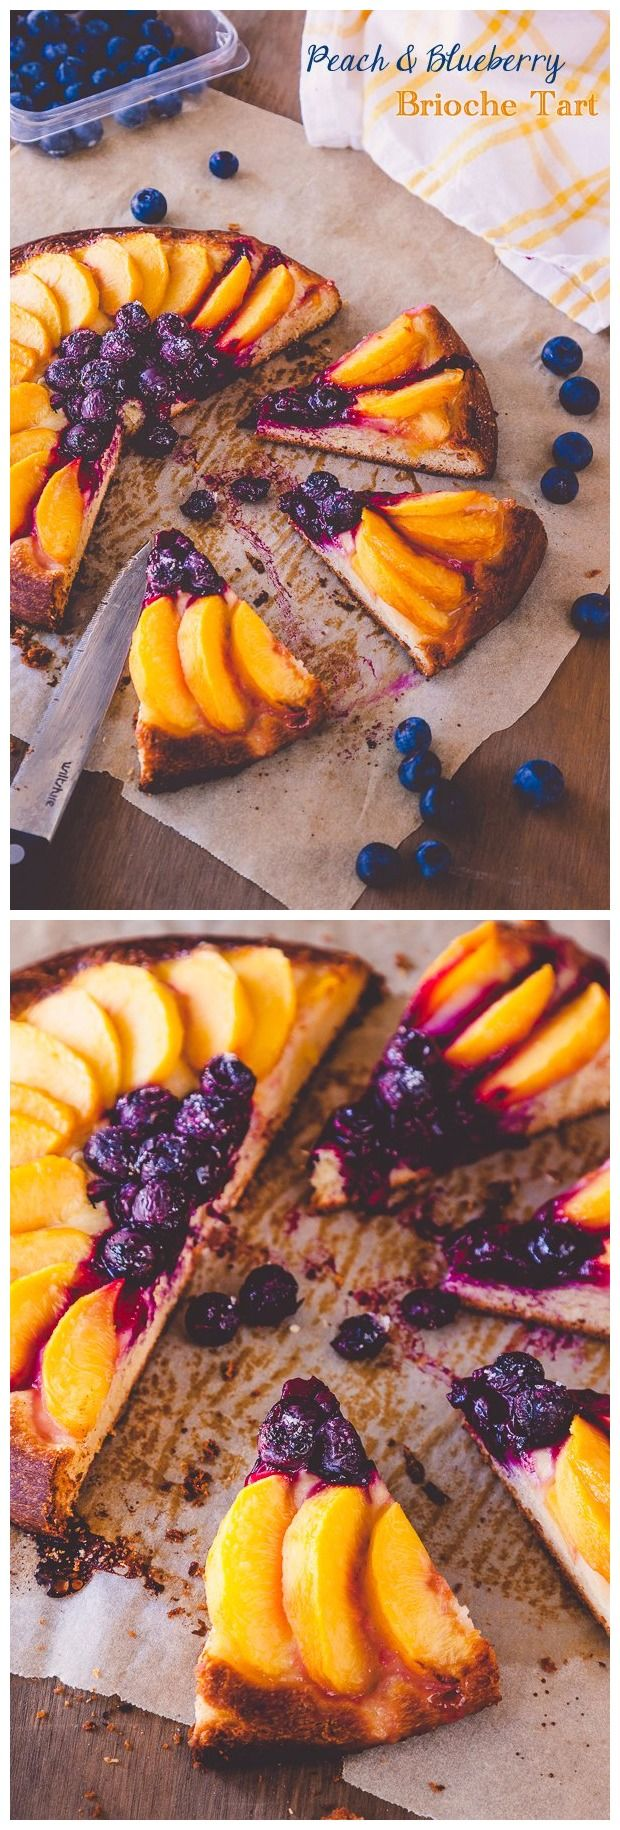 Peach and Blueberry Brioche Tart Recipe